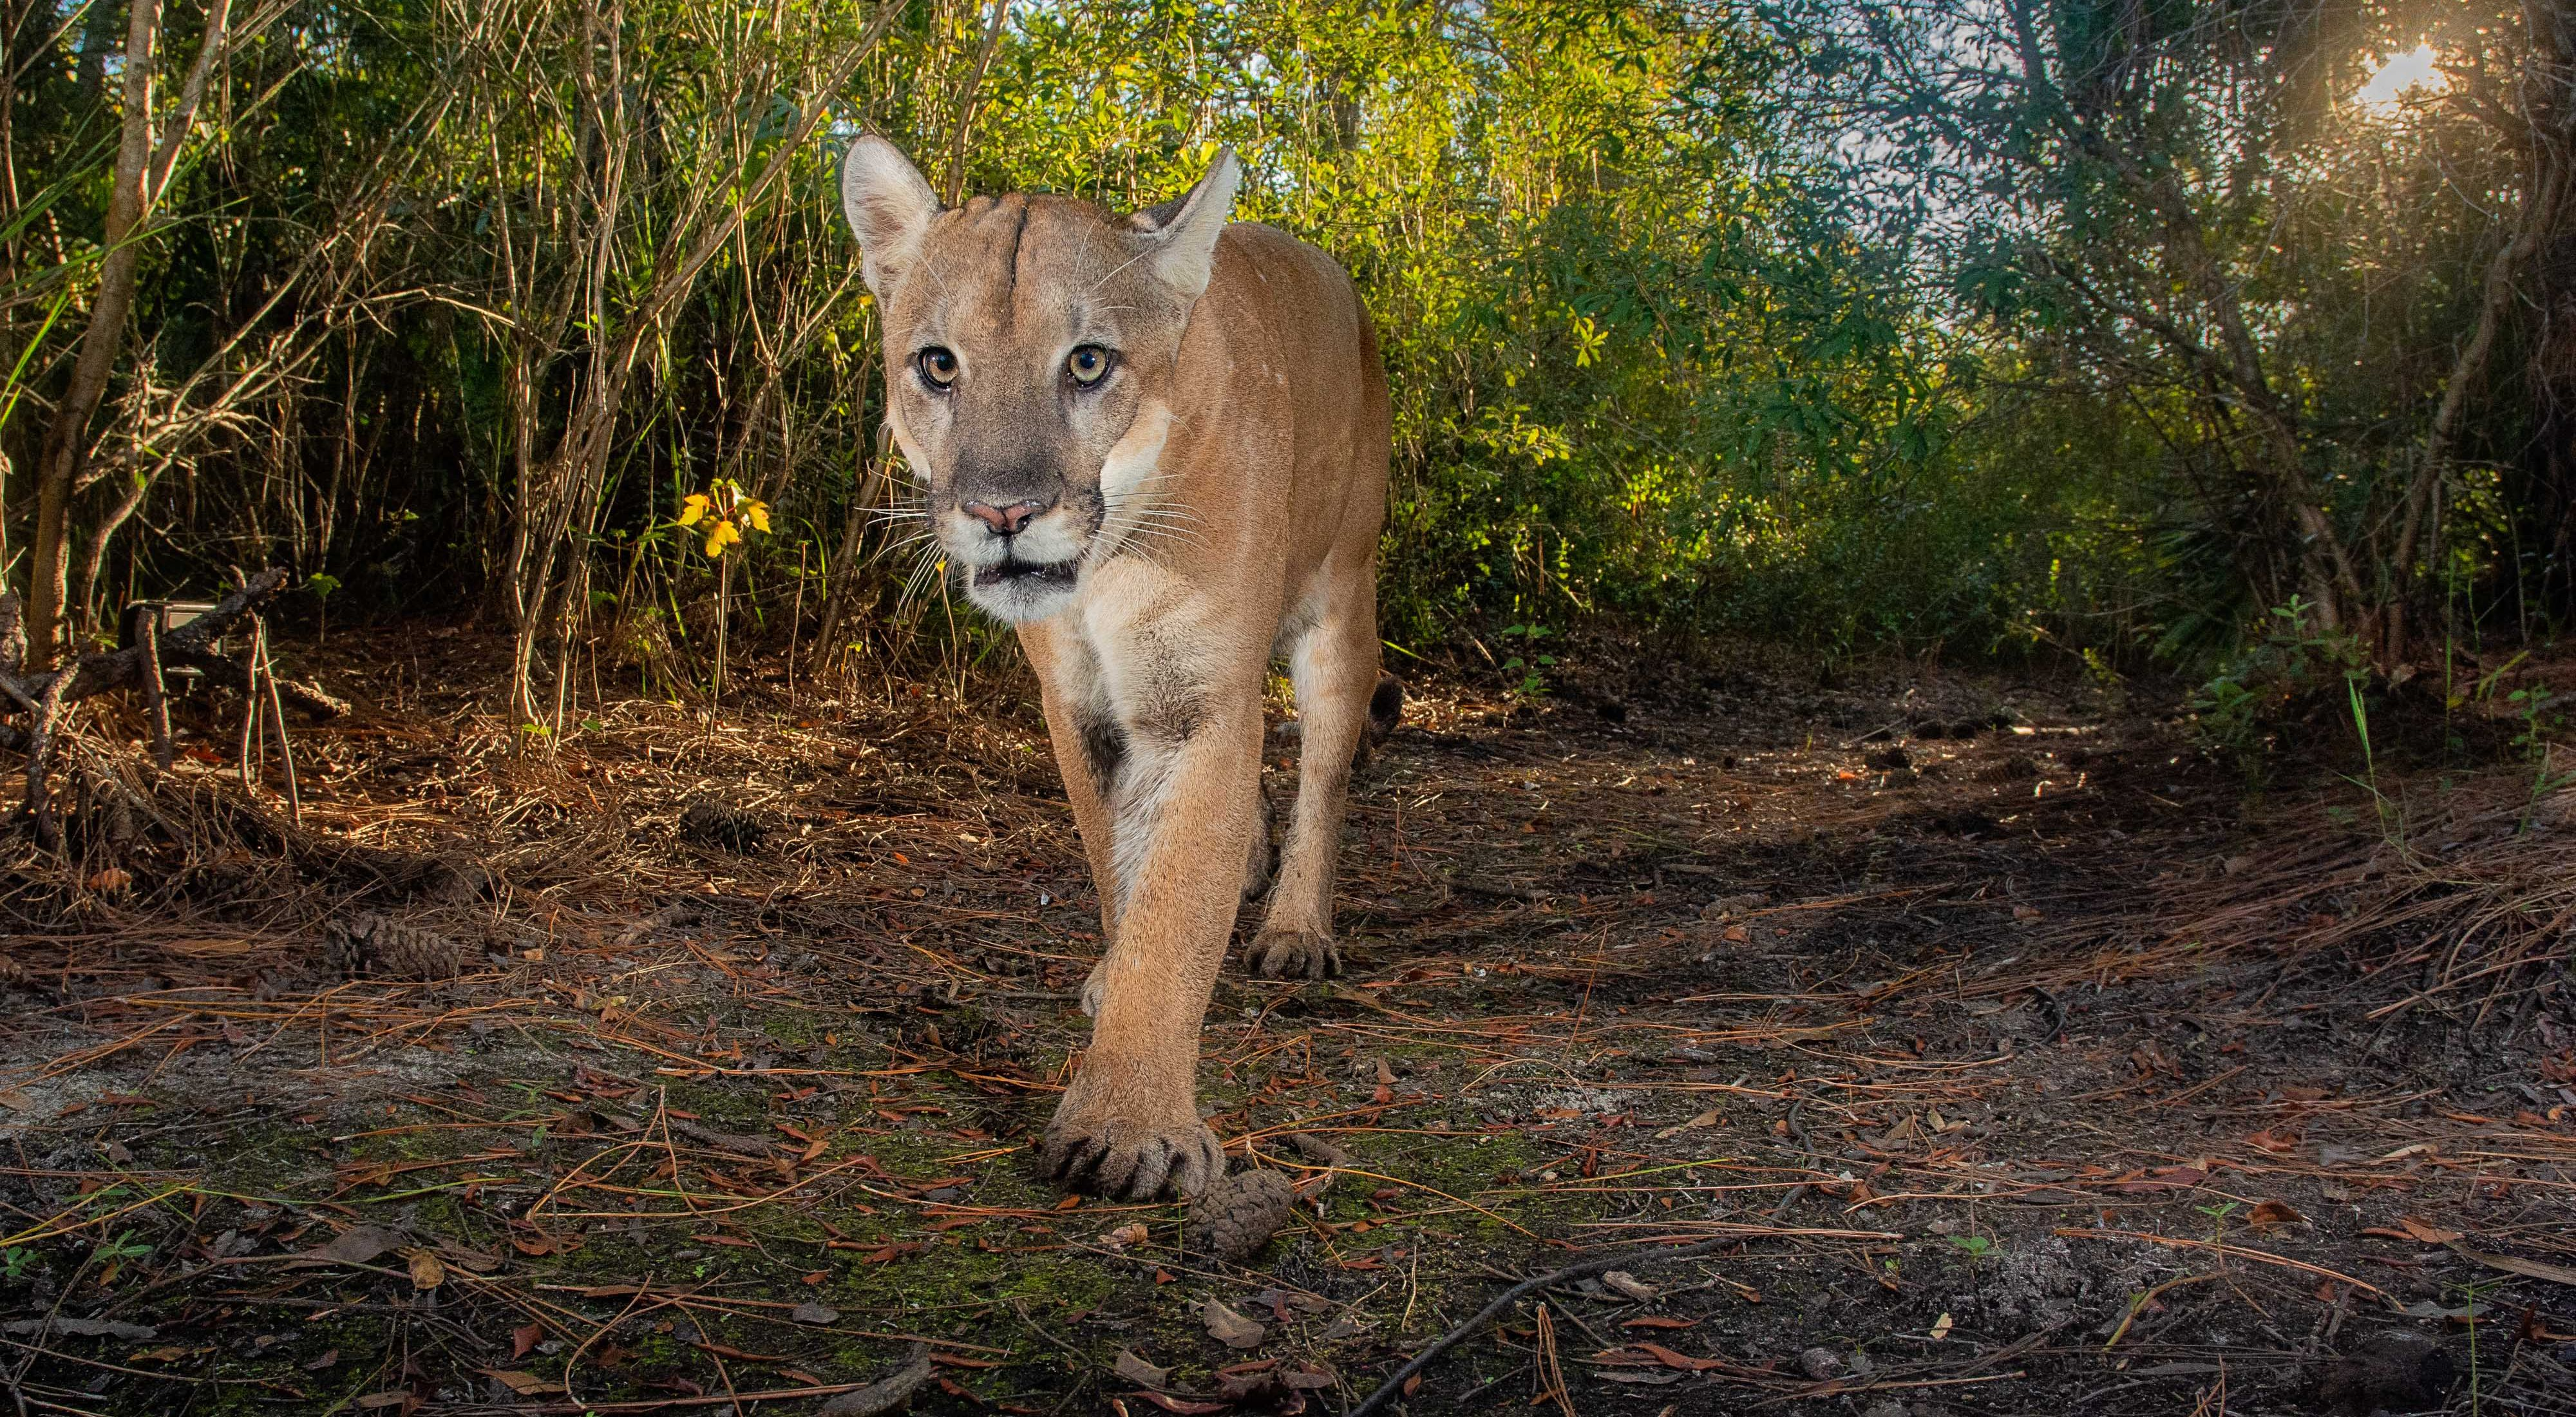 Florida panther walking in forest toward the camera.